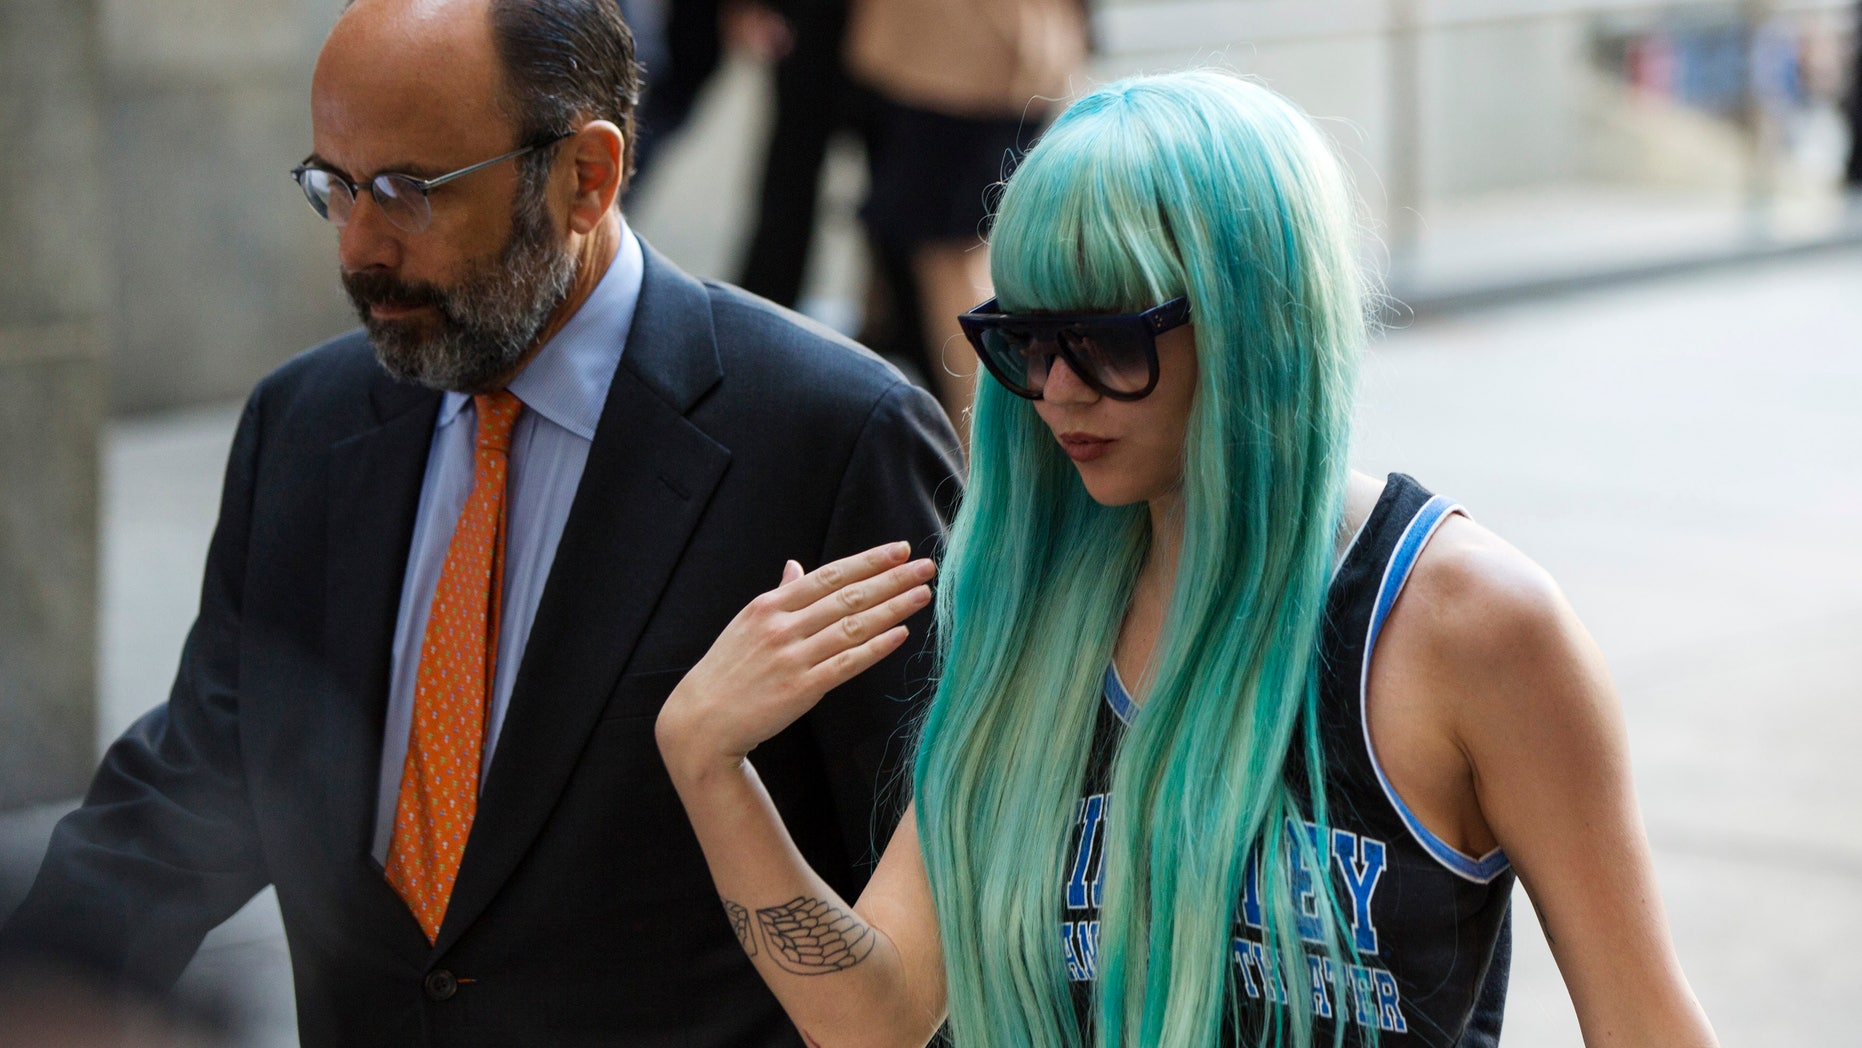 July 9, 2013. Actress Amanda Bynes arrives for a court hearing at Manhattan Criminal Court in New York. Bynes is charged with reckless endangerment and attempted tampering with physical evidence.